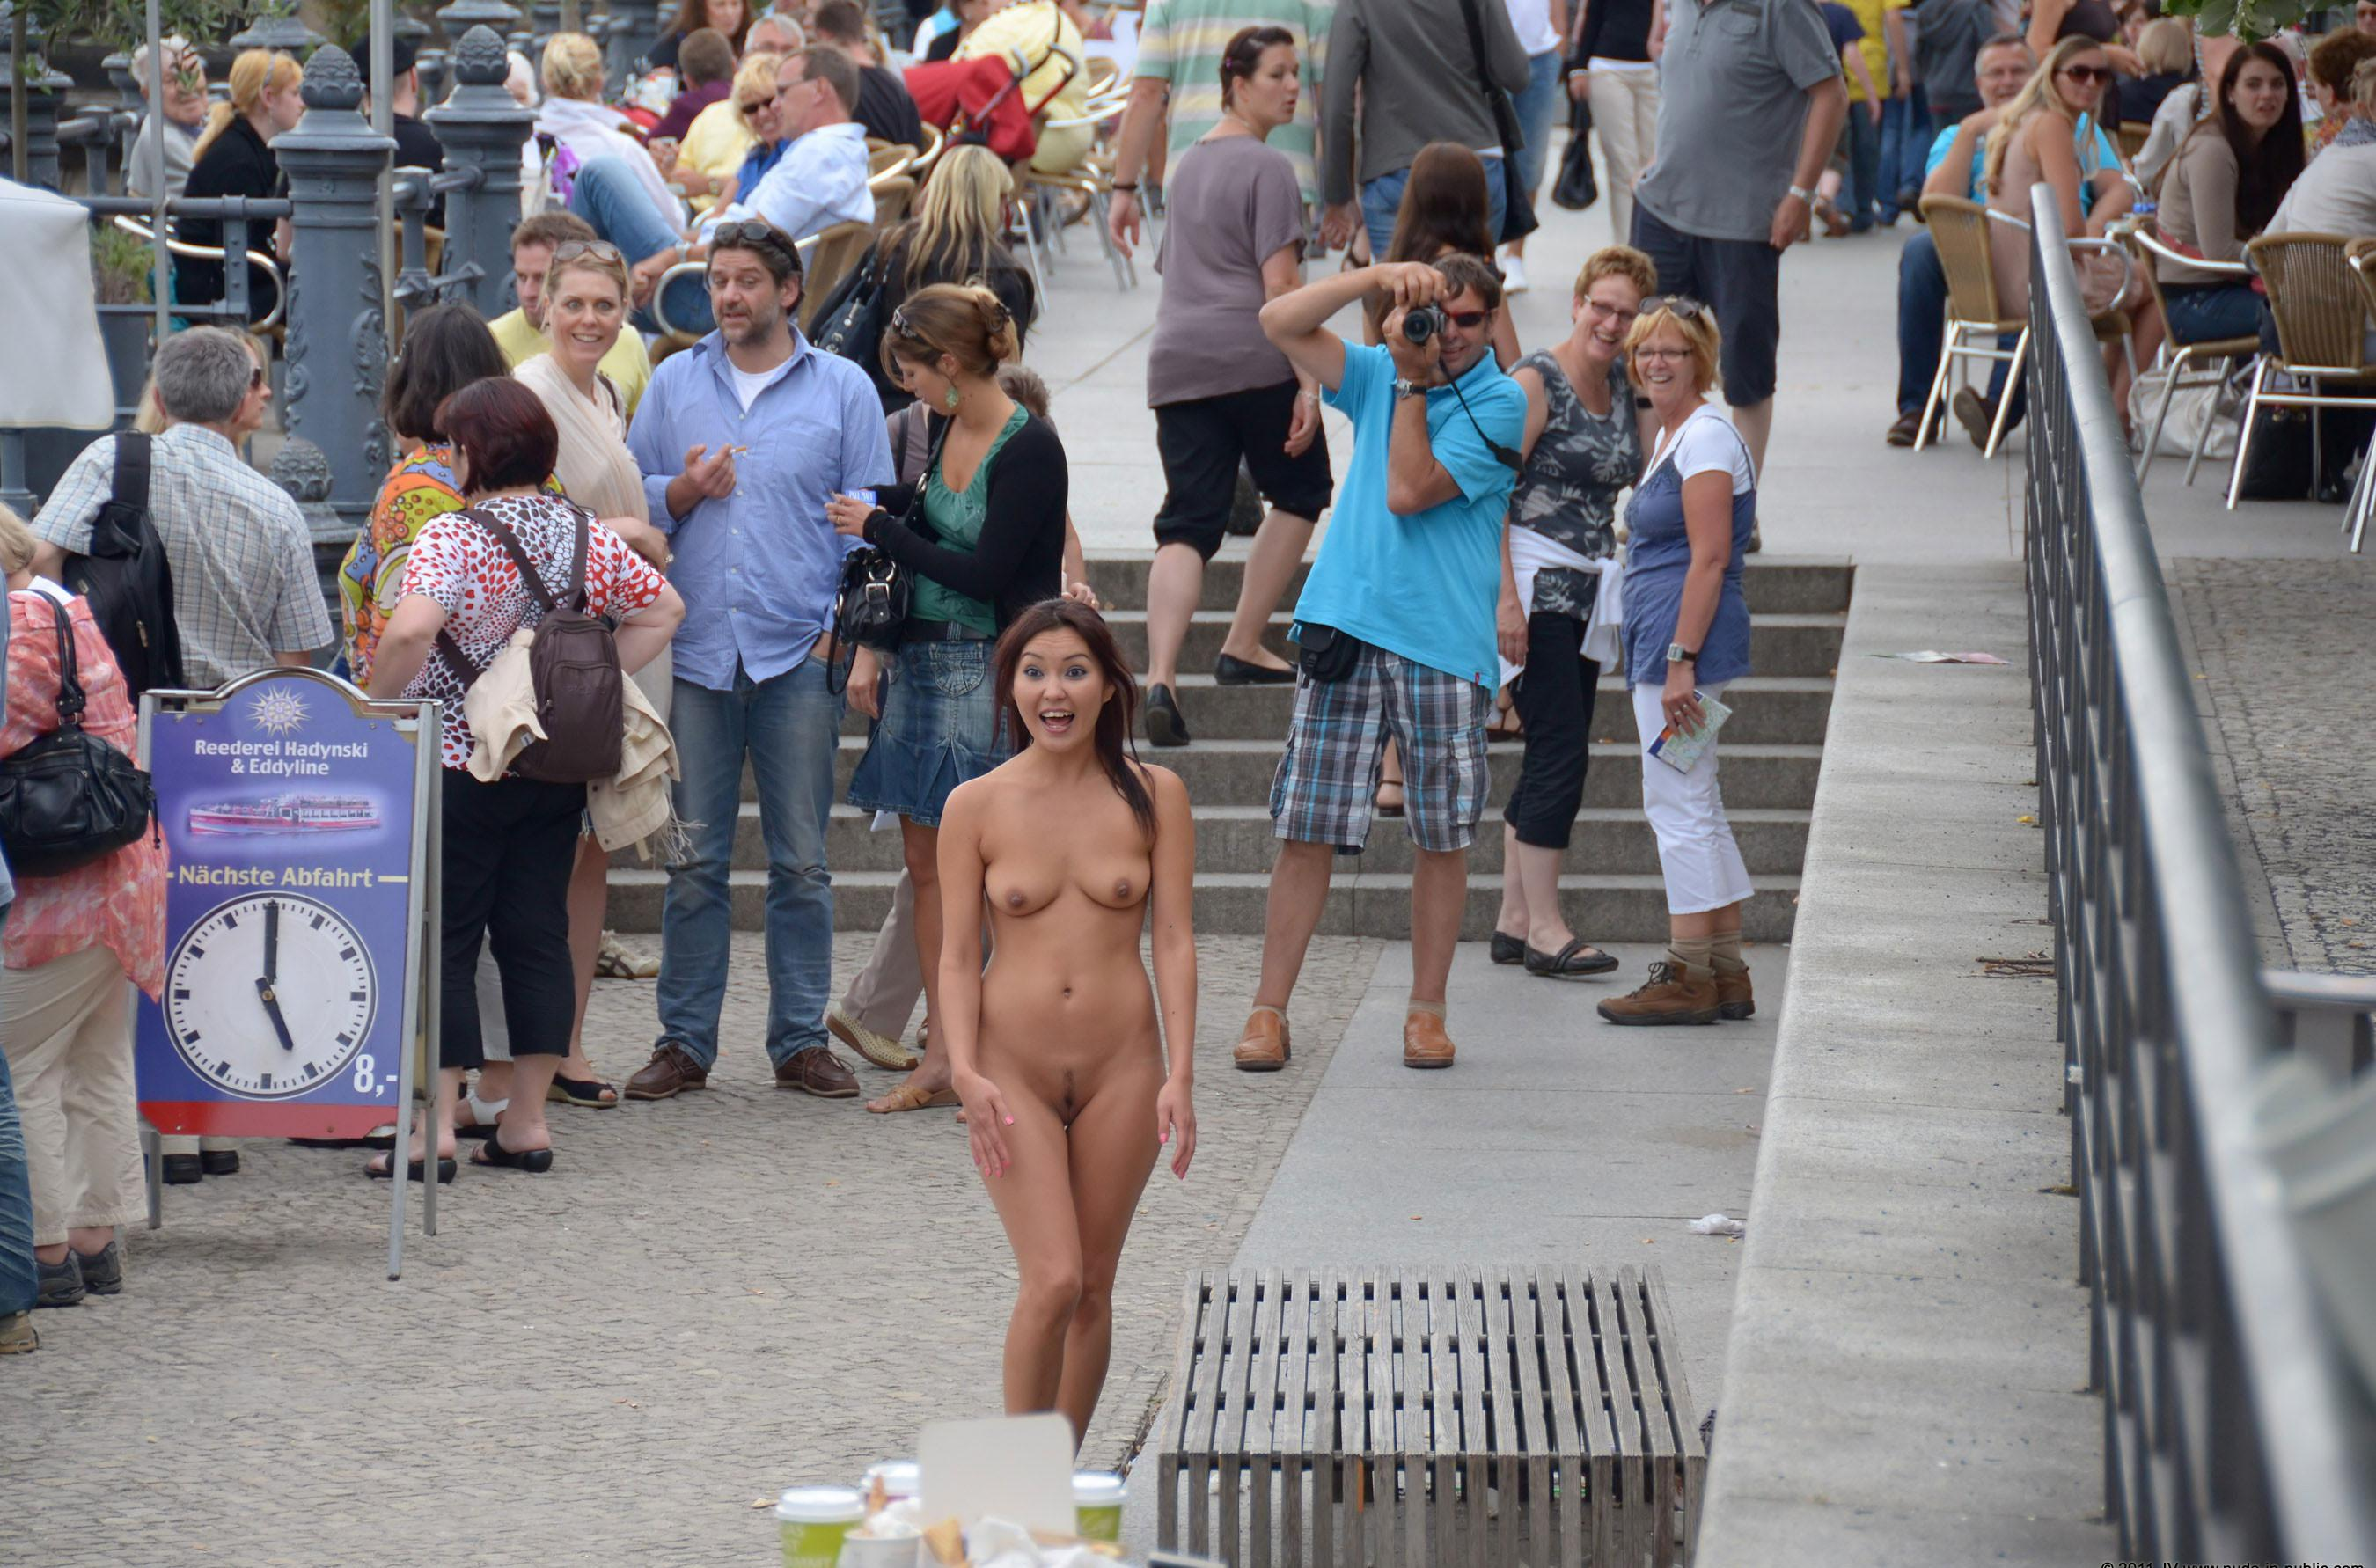 Area nude in public pity